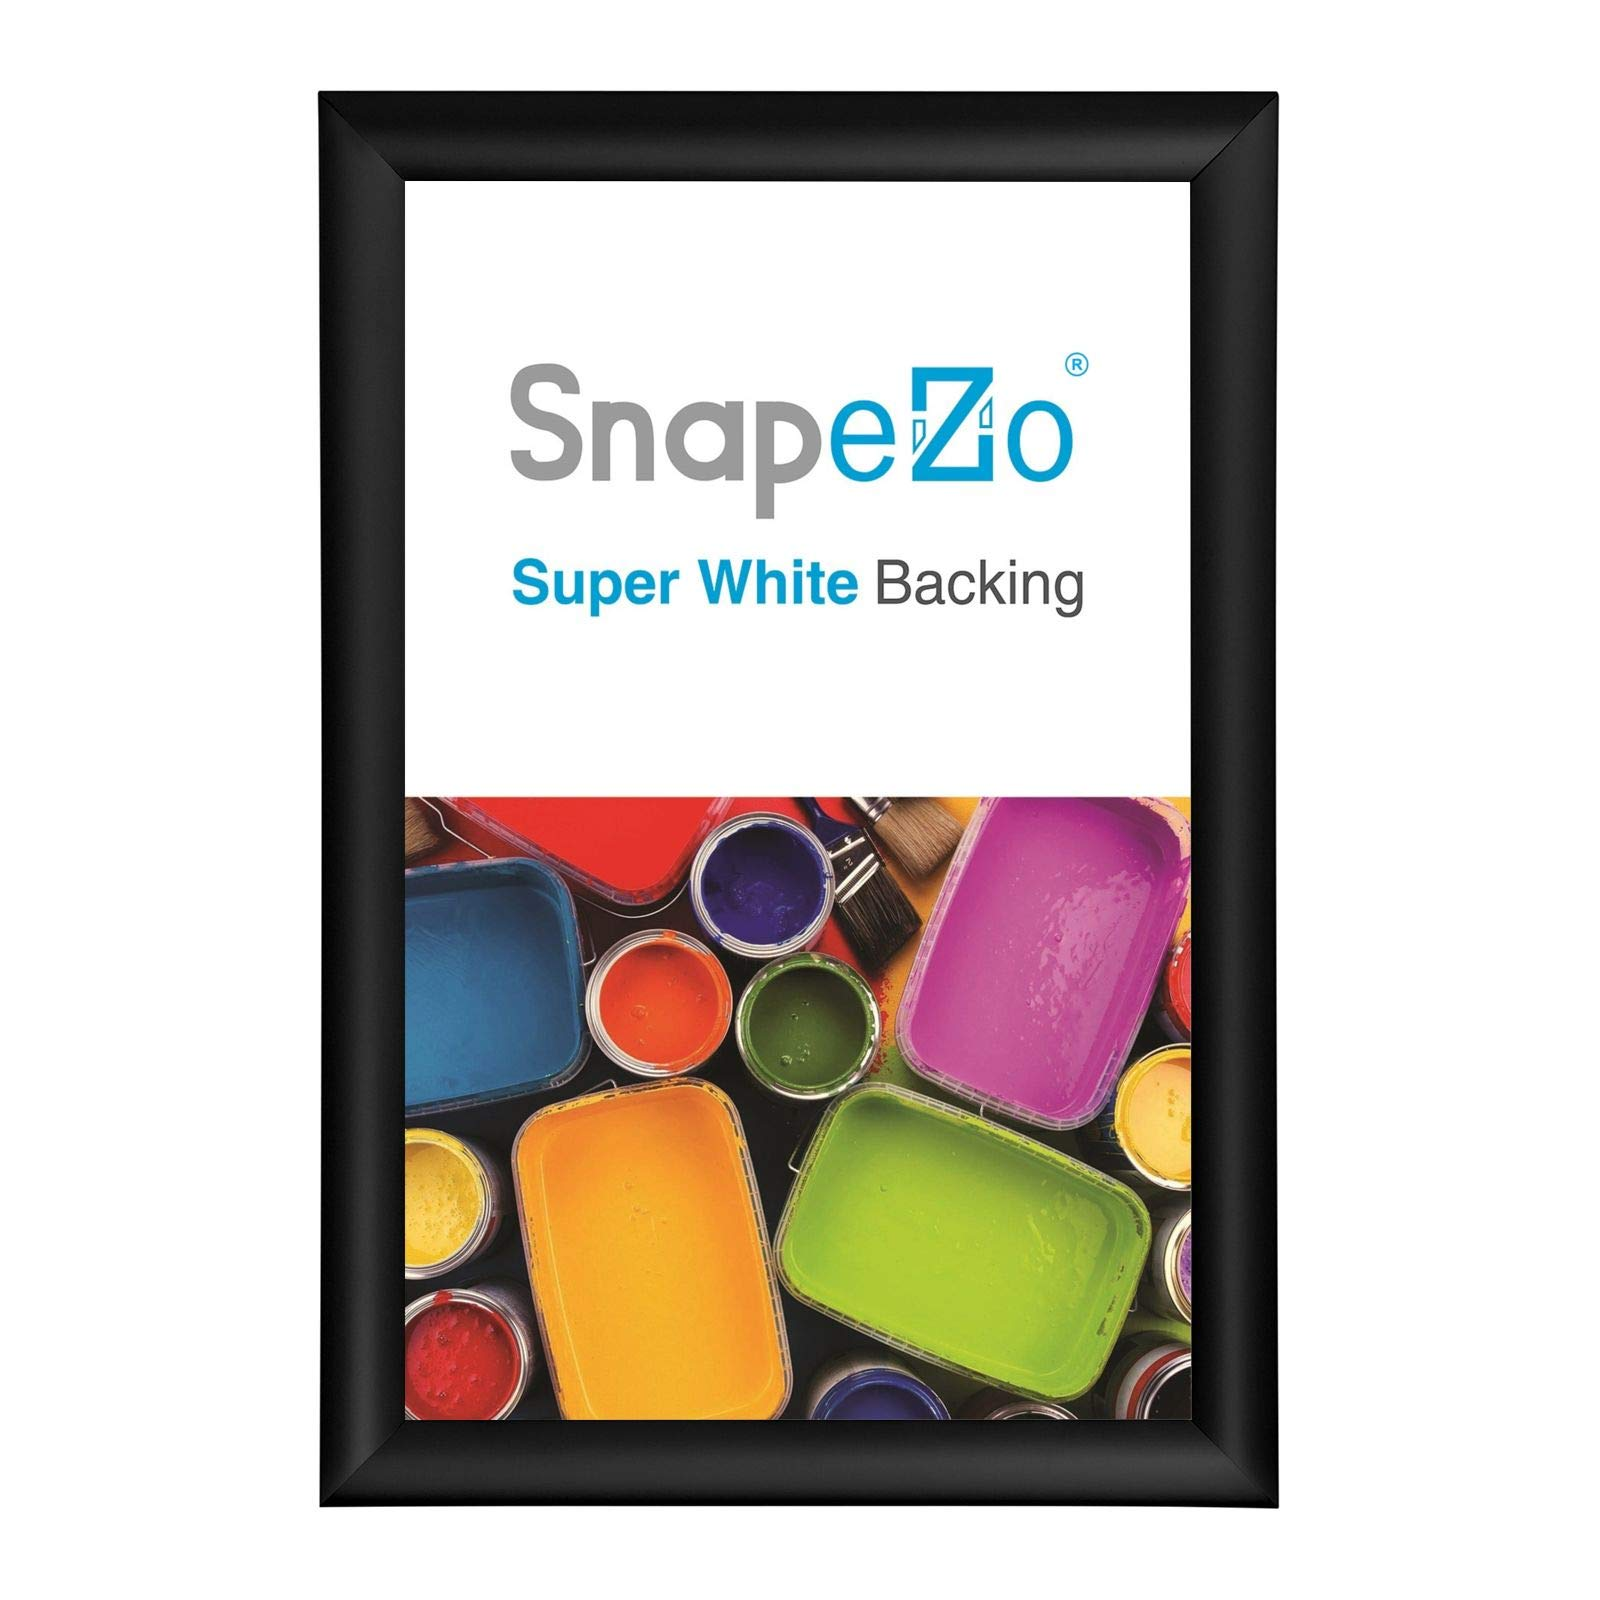 SnapeZo Poster Frame 12x18 Inches, Black 1'' Aluminum Profile, Front-Loading Snap Frame, Wall Mounting, Sleek Series